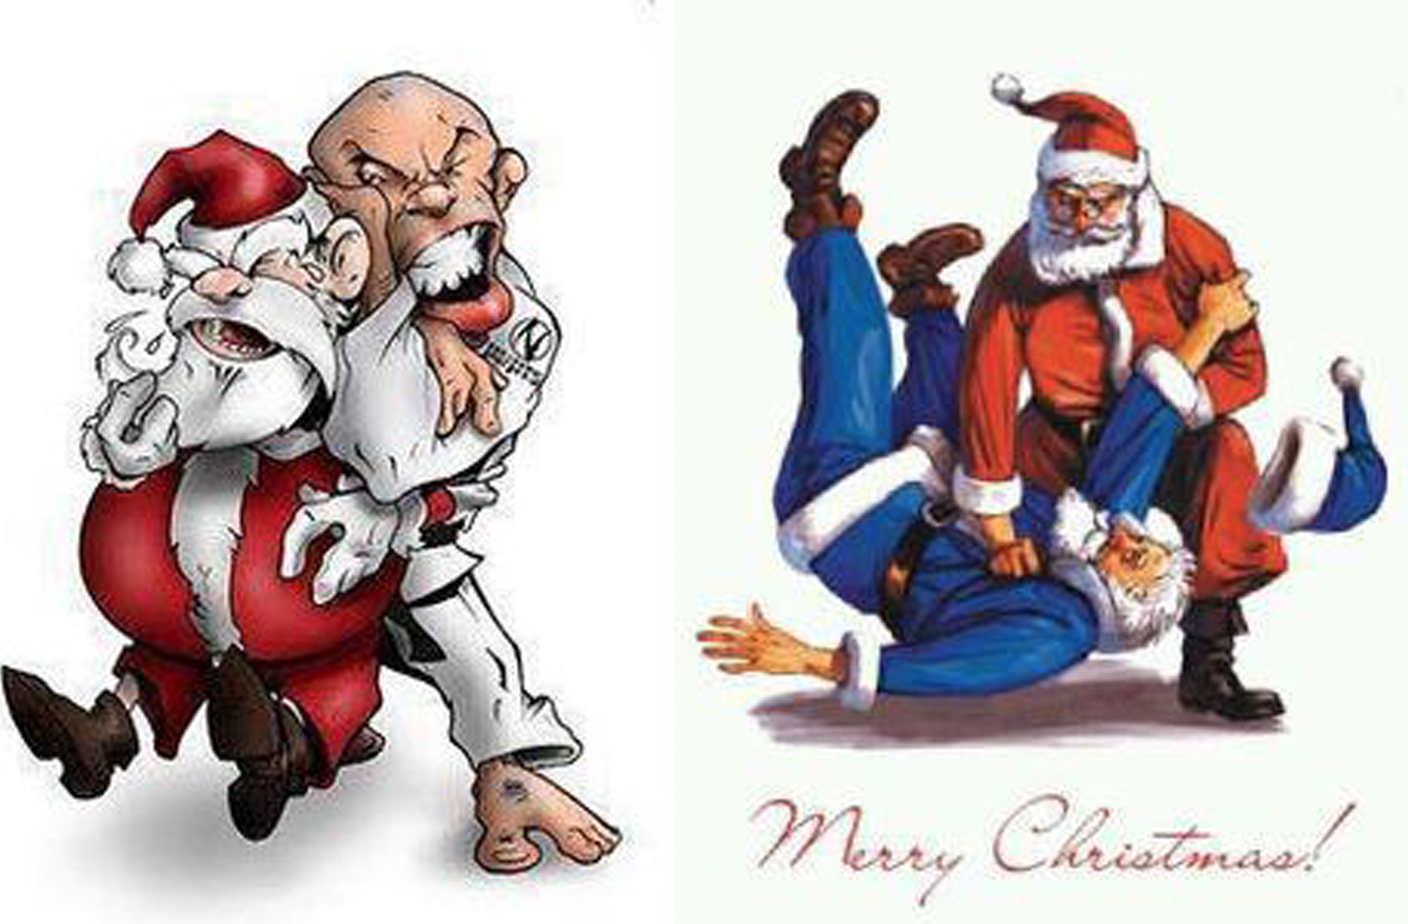 Top 10 Jiu-Jitsu Holiday Wish List